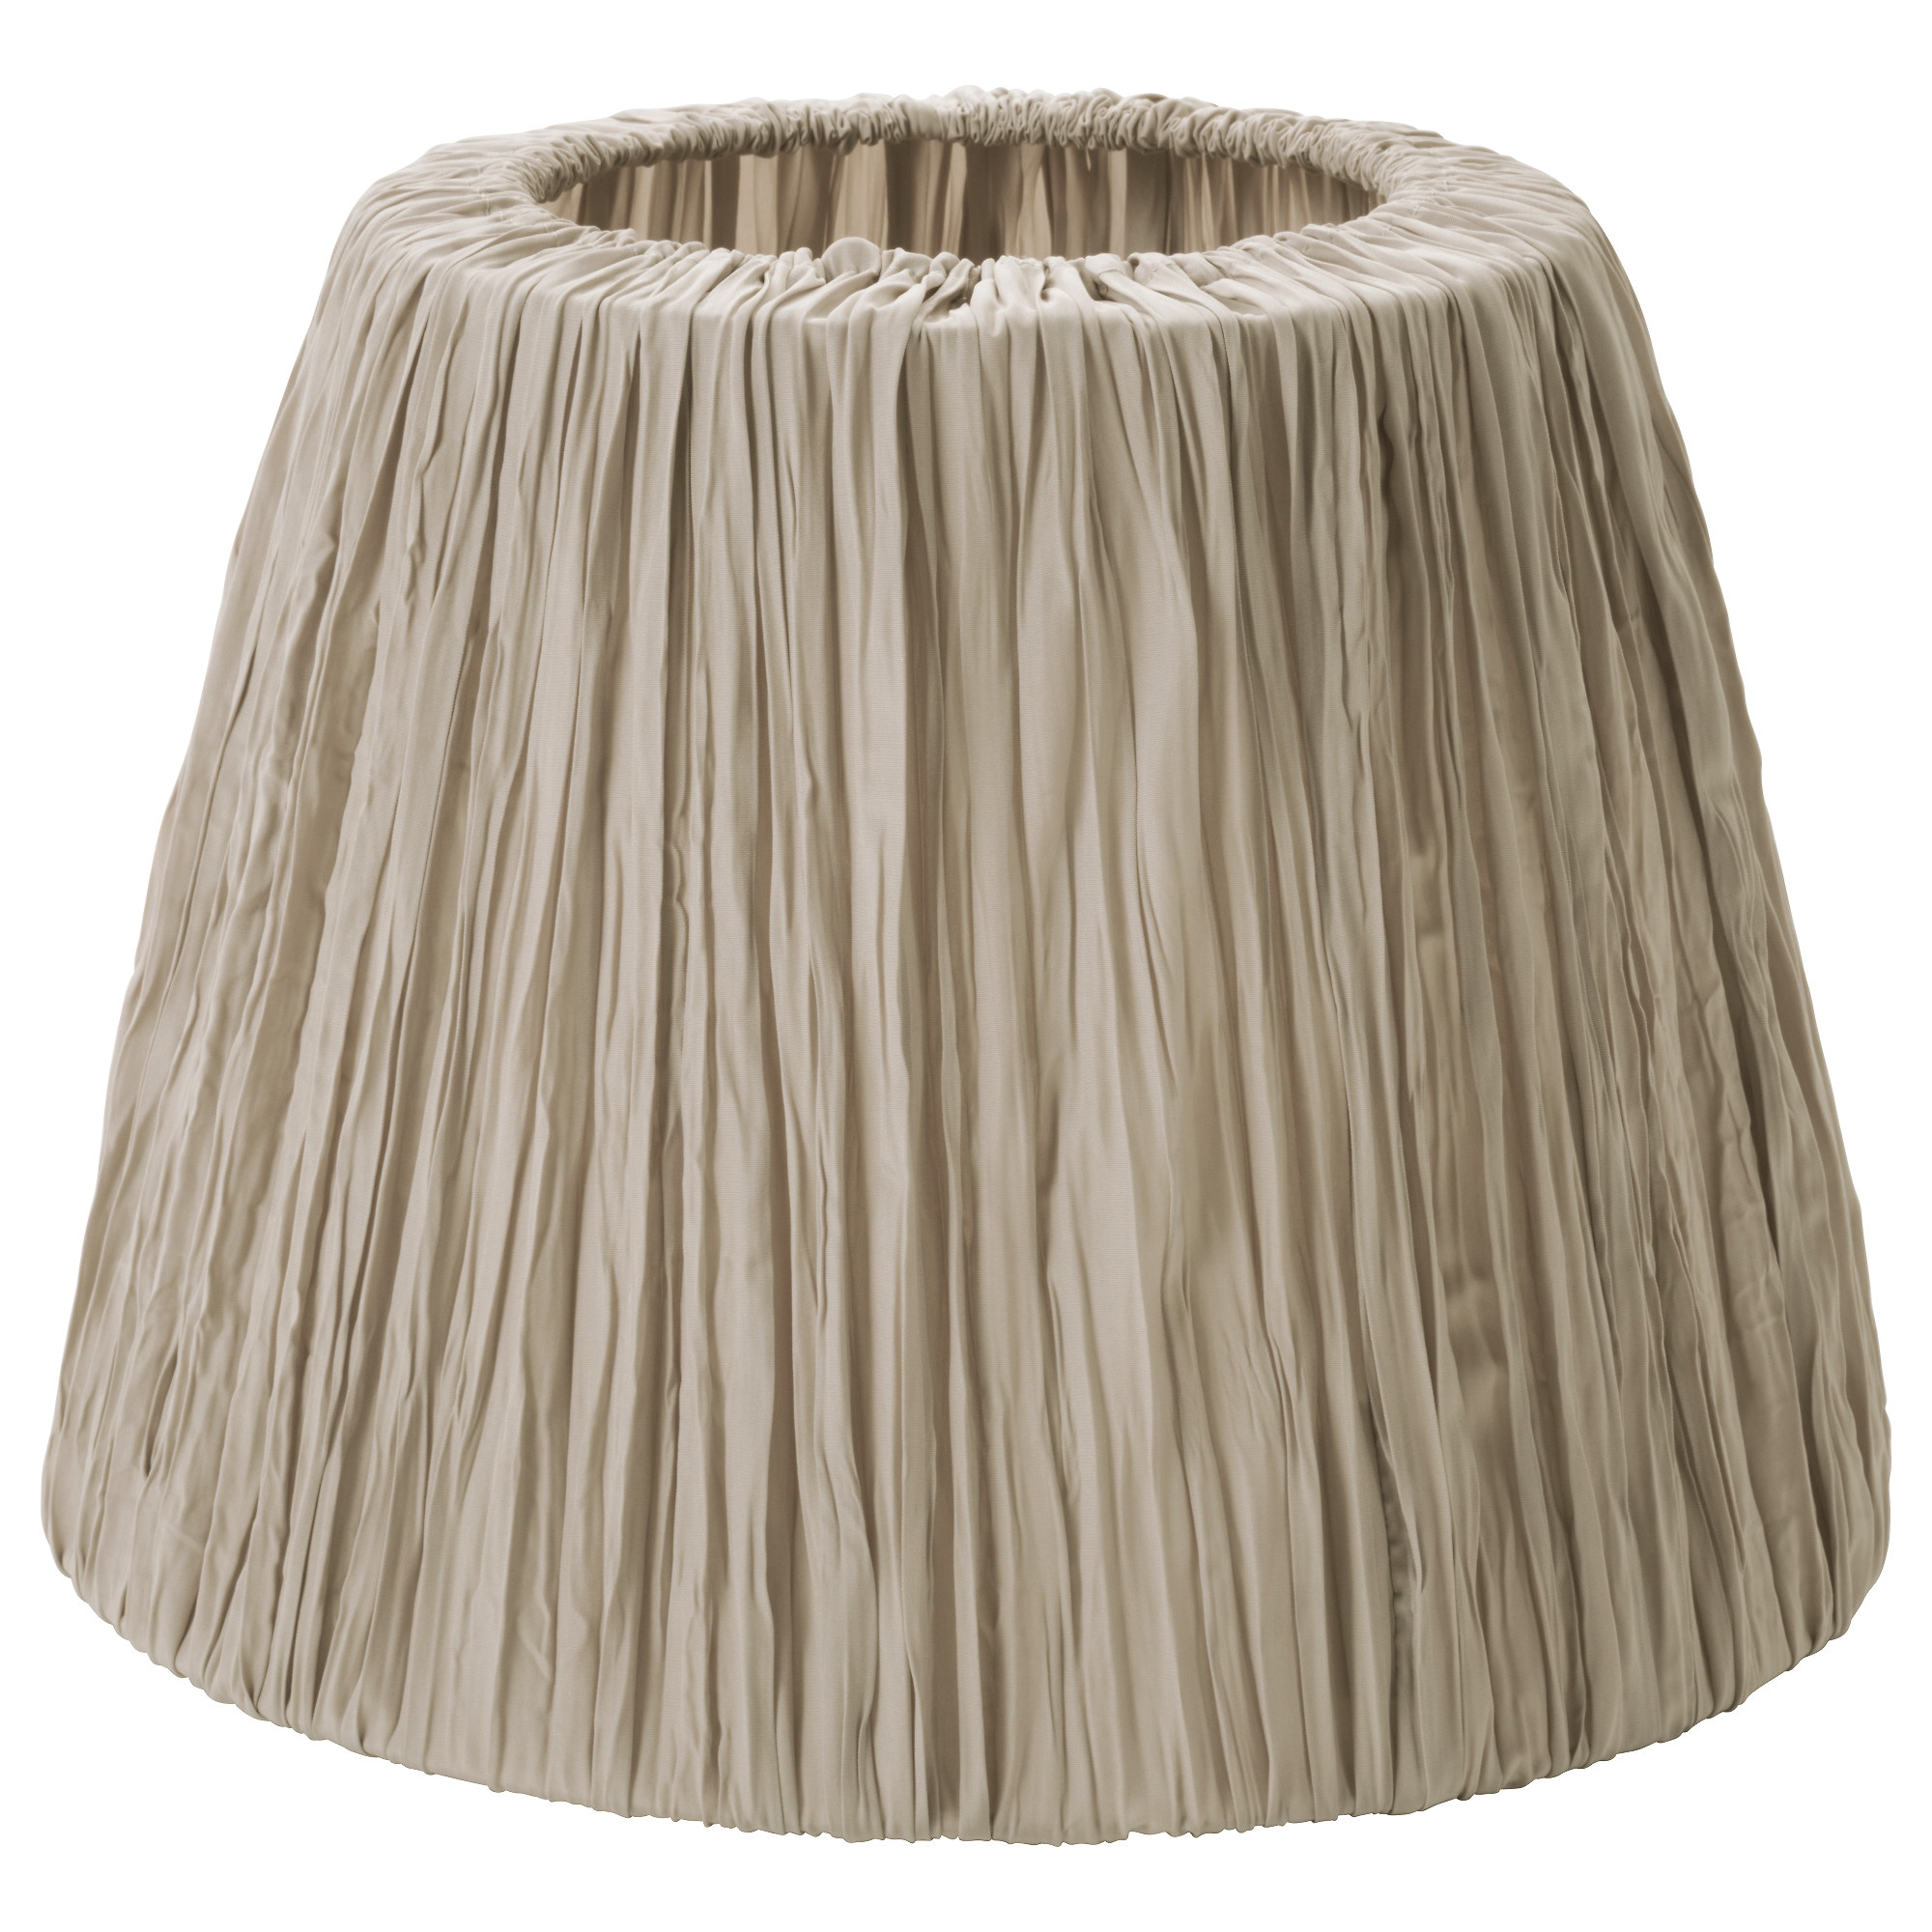 HEMSTA lamp shade, beige Height: 10